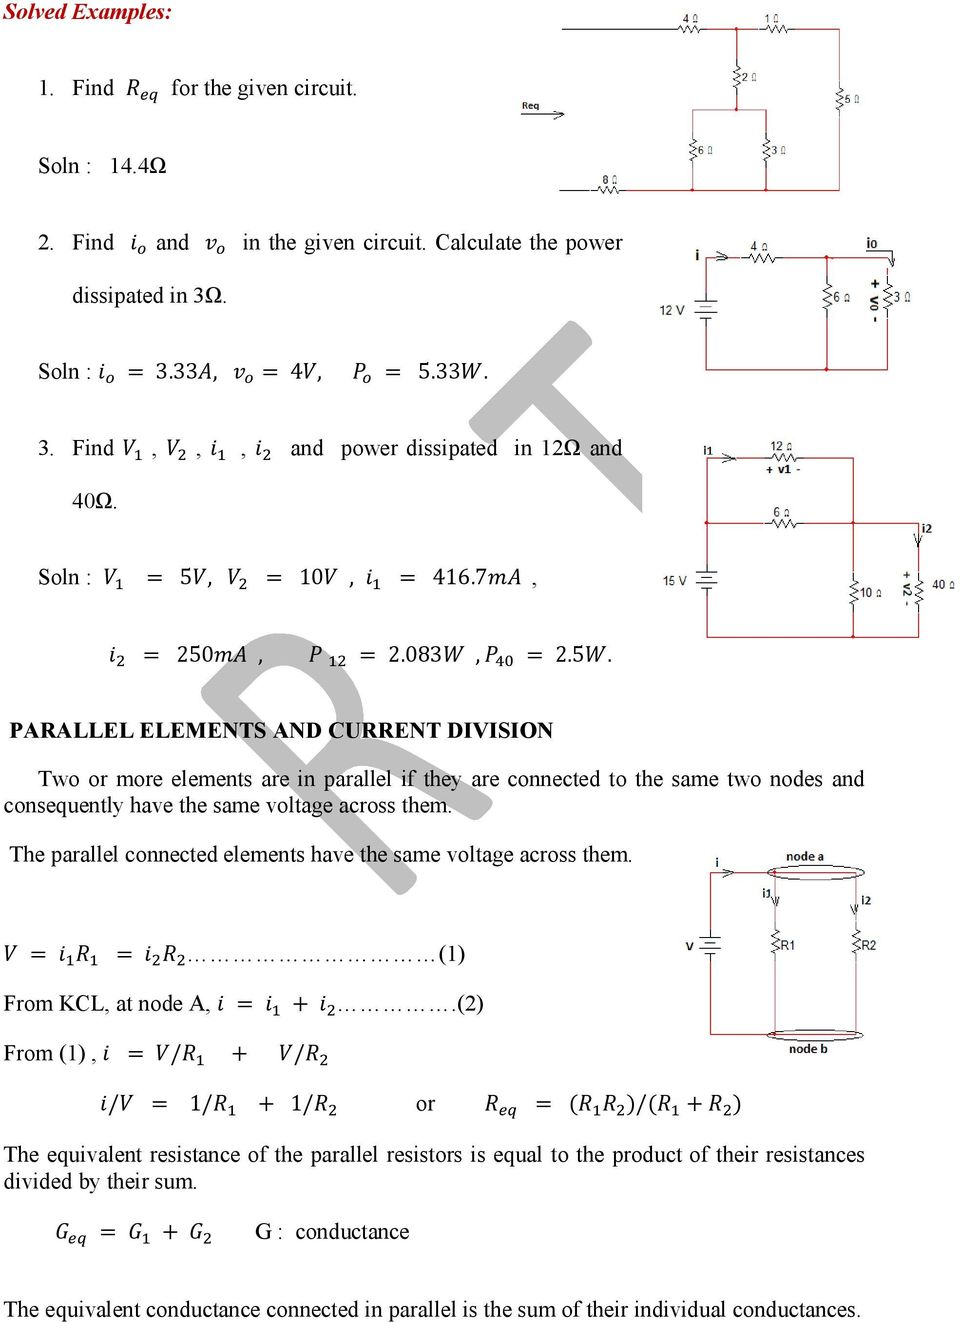 Basic Electrical Engineering Pdf Square Circuit Equivalent Resistance Of Resistor The Parallel Connected Elements Have Same Voltage Across Them 1